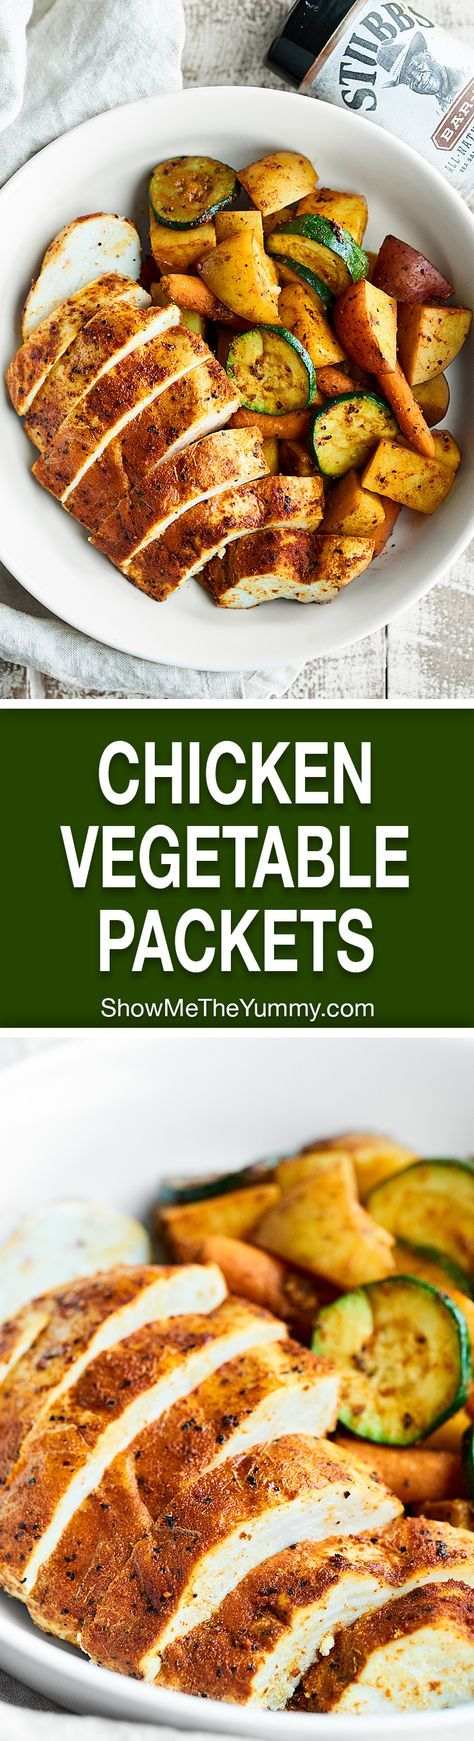 These Chicken and Vegetable Foil Packets are perfect for easy, healthy, weeknight dinners! Full of BBQ chicken, zucchini, carrots, & potatoes. showmetheyummy.com #ad #stubbsinsider @stubbsbbq (Weeknight Paleo Meals)